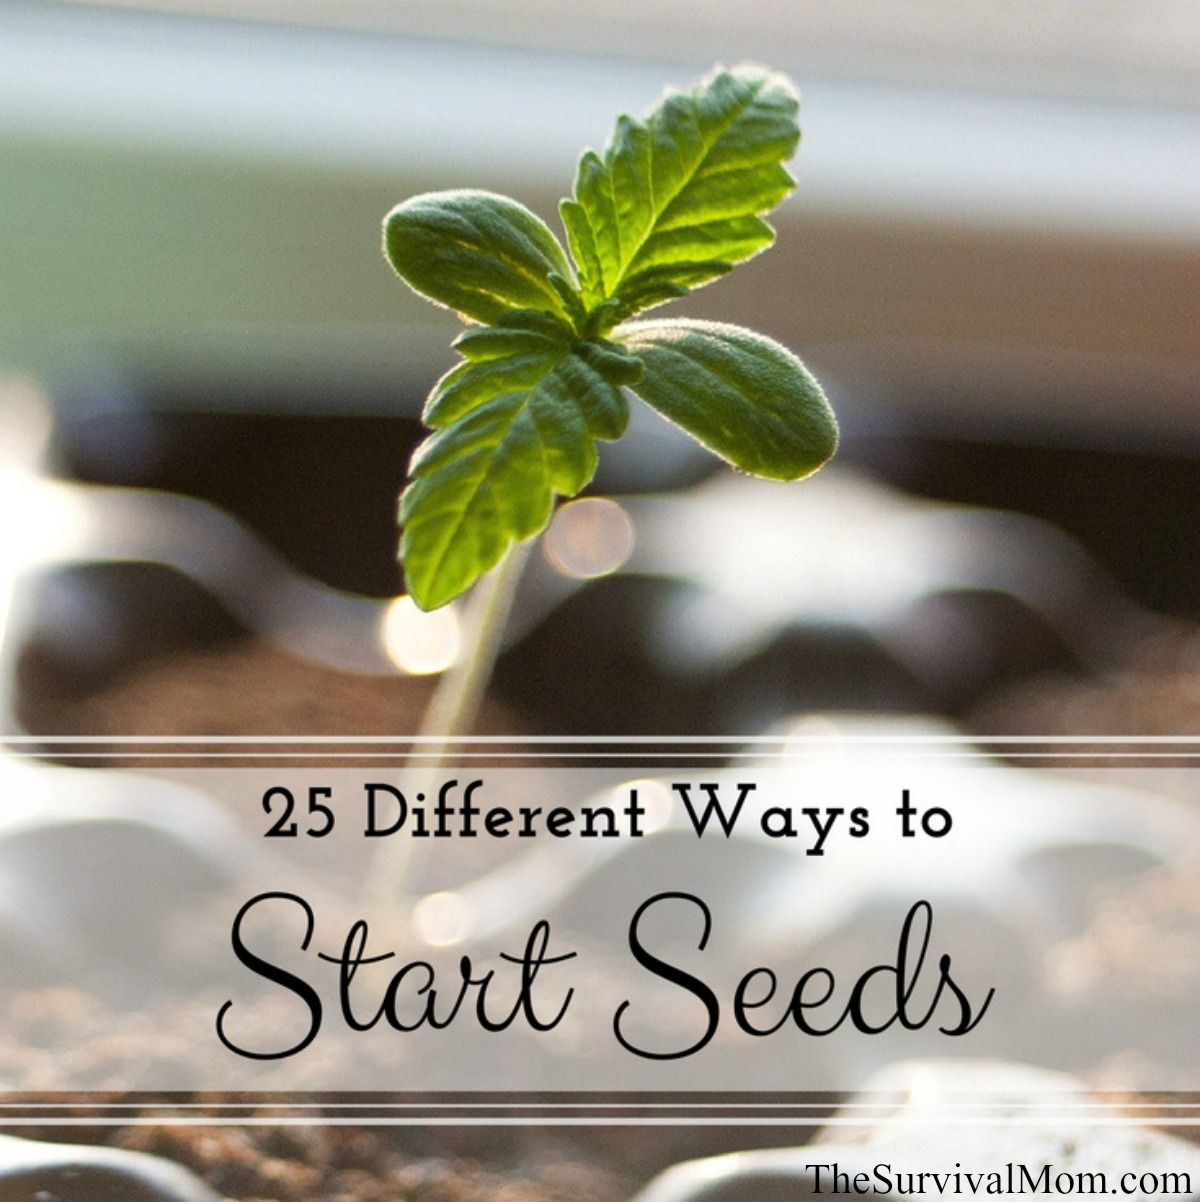 25 Different Ways to Start Seeds via The Survival Mom